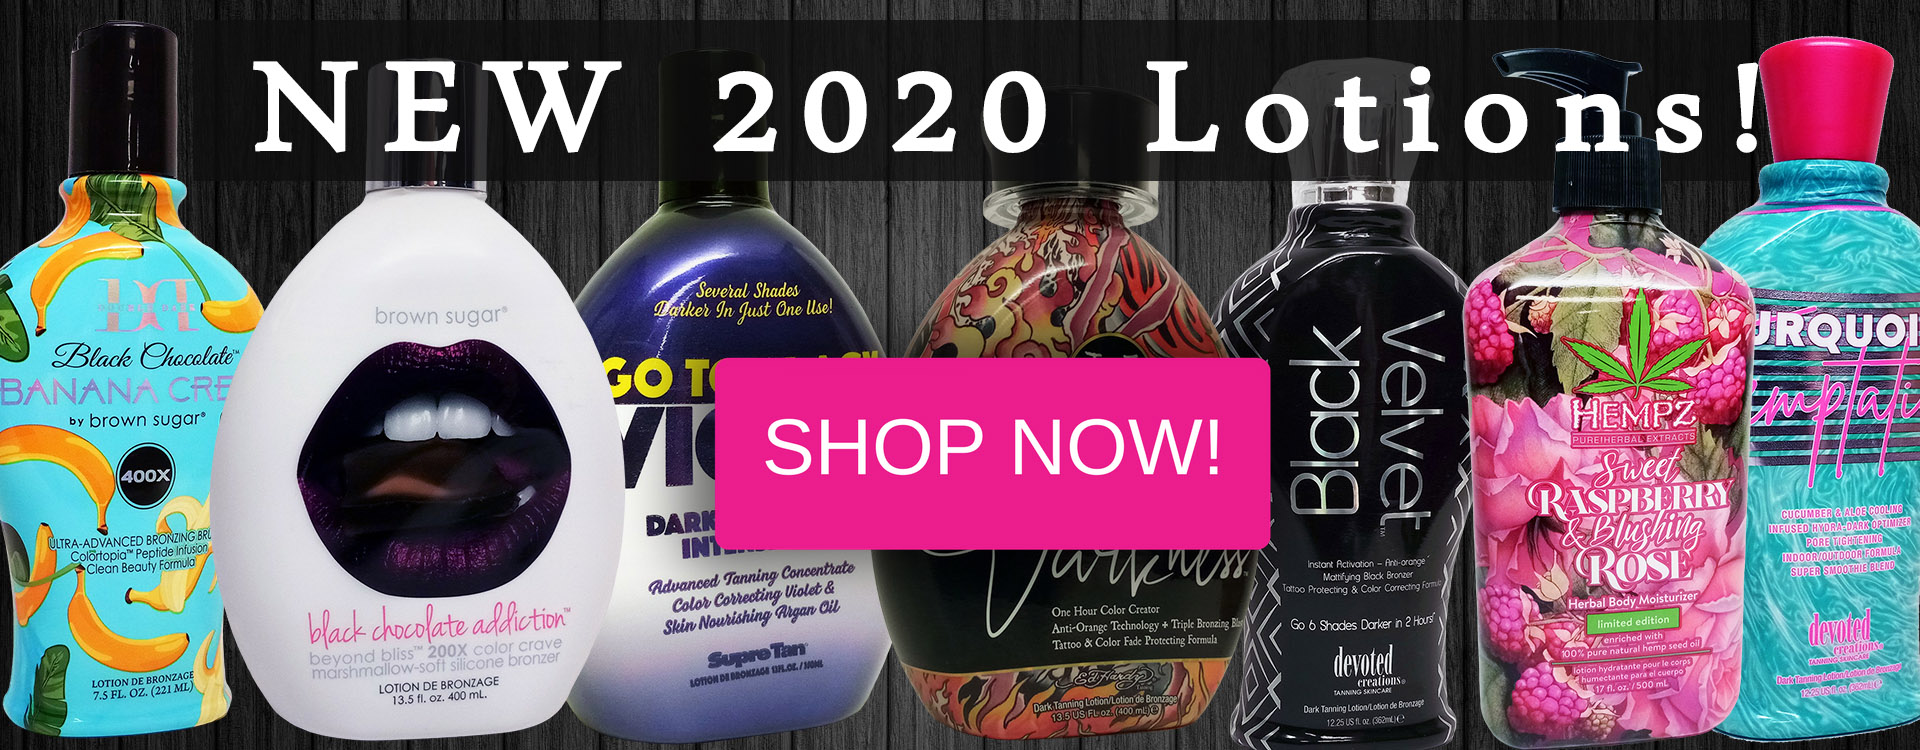 new 2020 tanning lotions